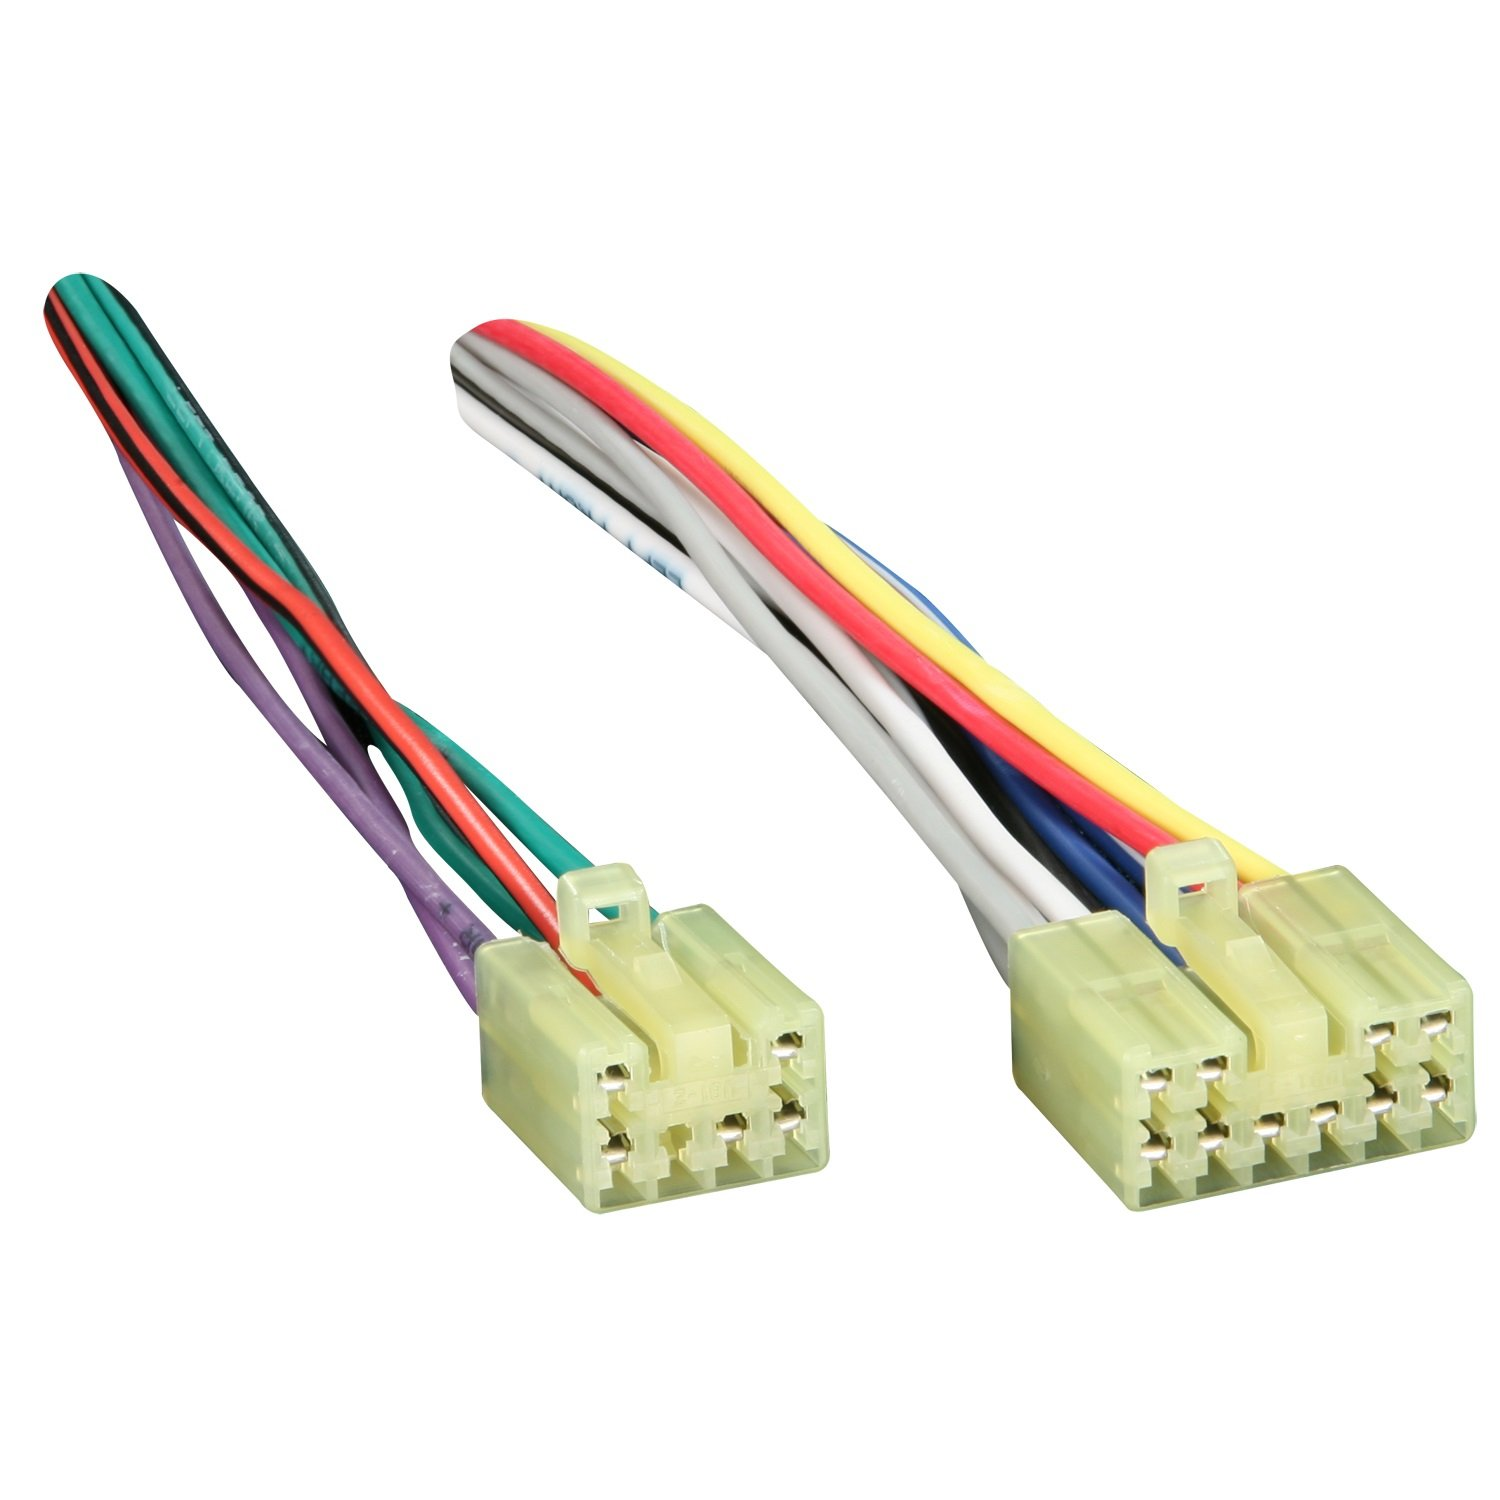 Metra Wire Harness For Toyota Vehicles (71-1761)